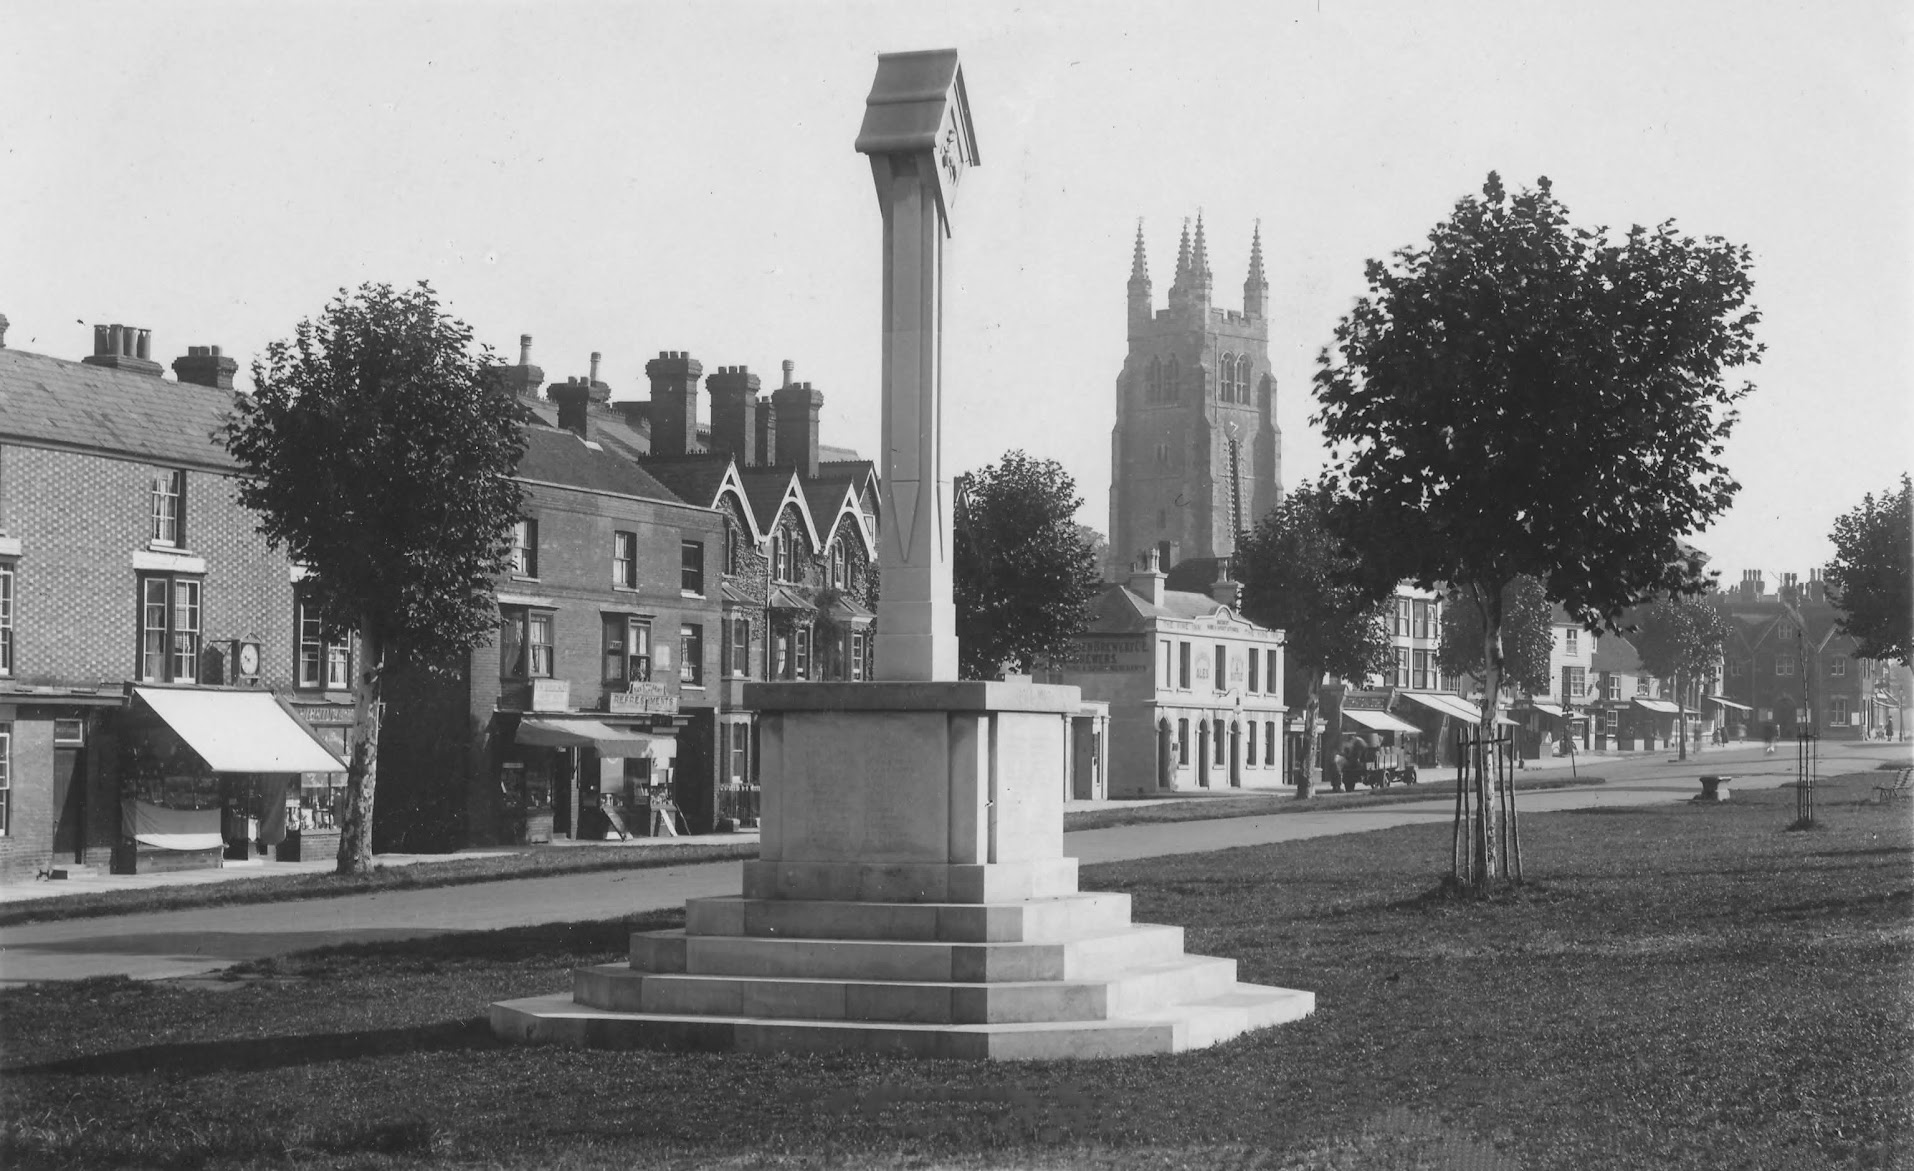 Water trough in Tenterden High Street after the unveiling of the War Memorial in 1920